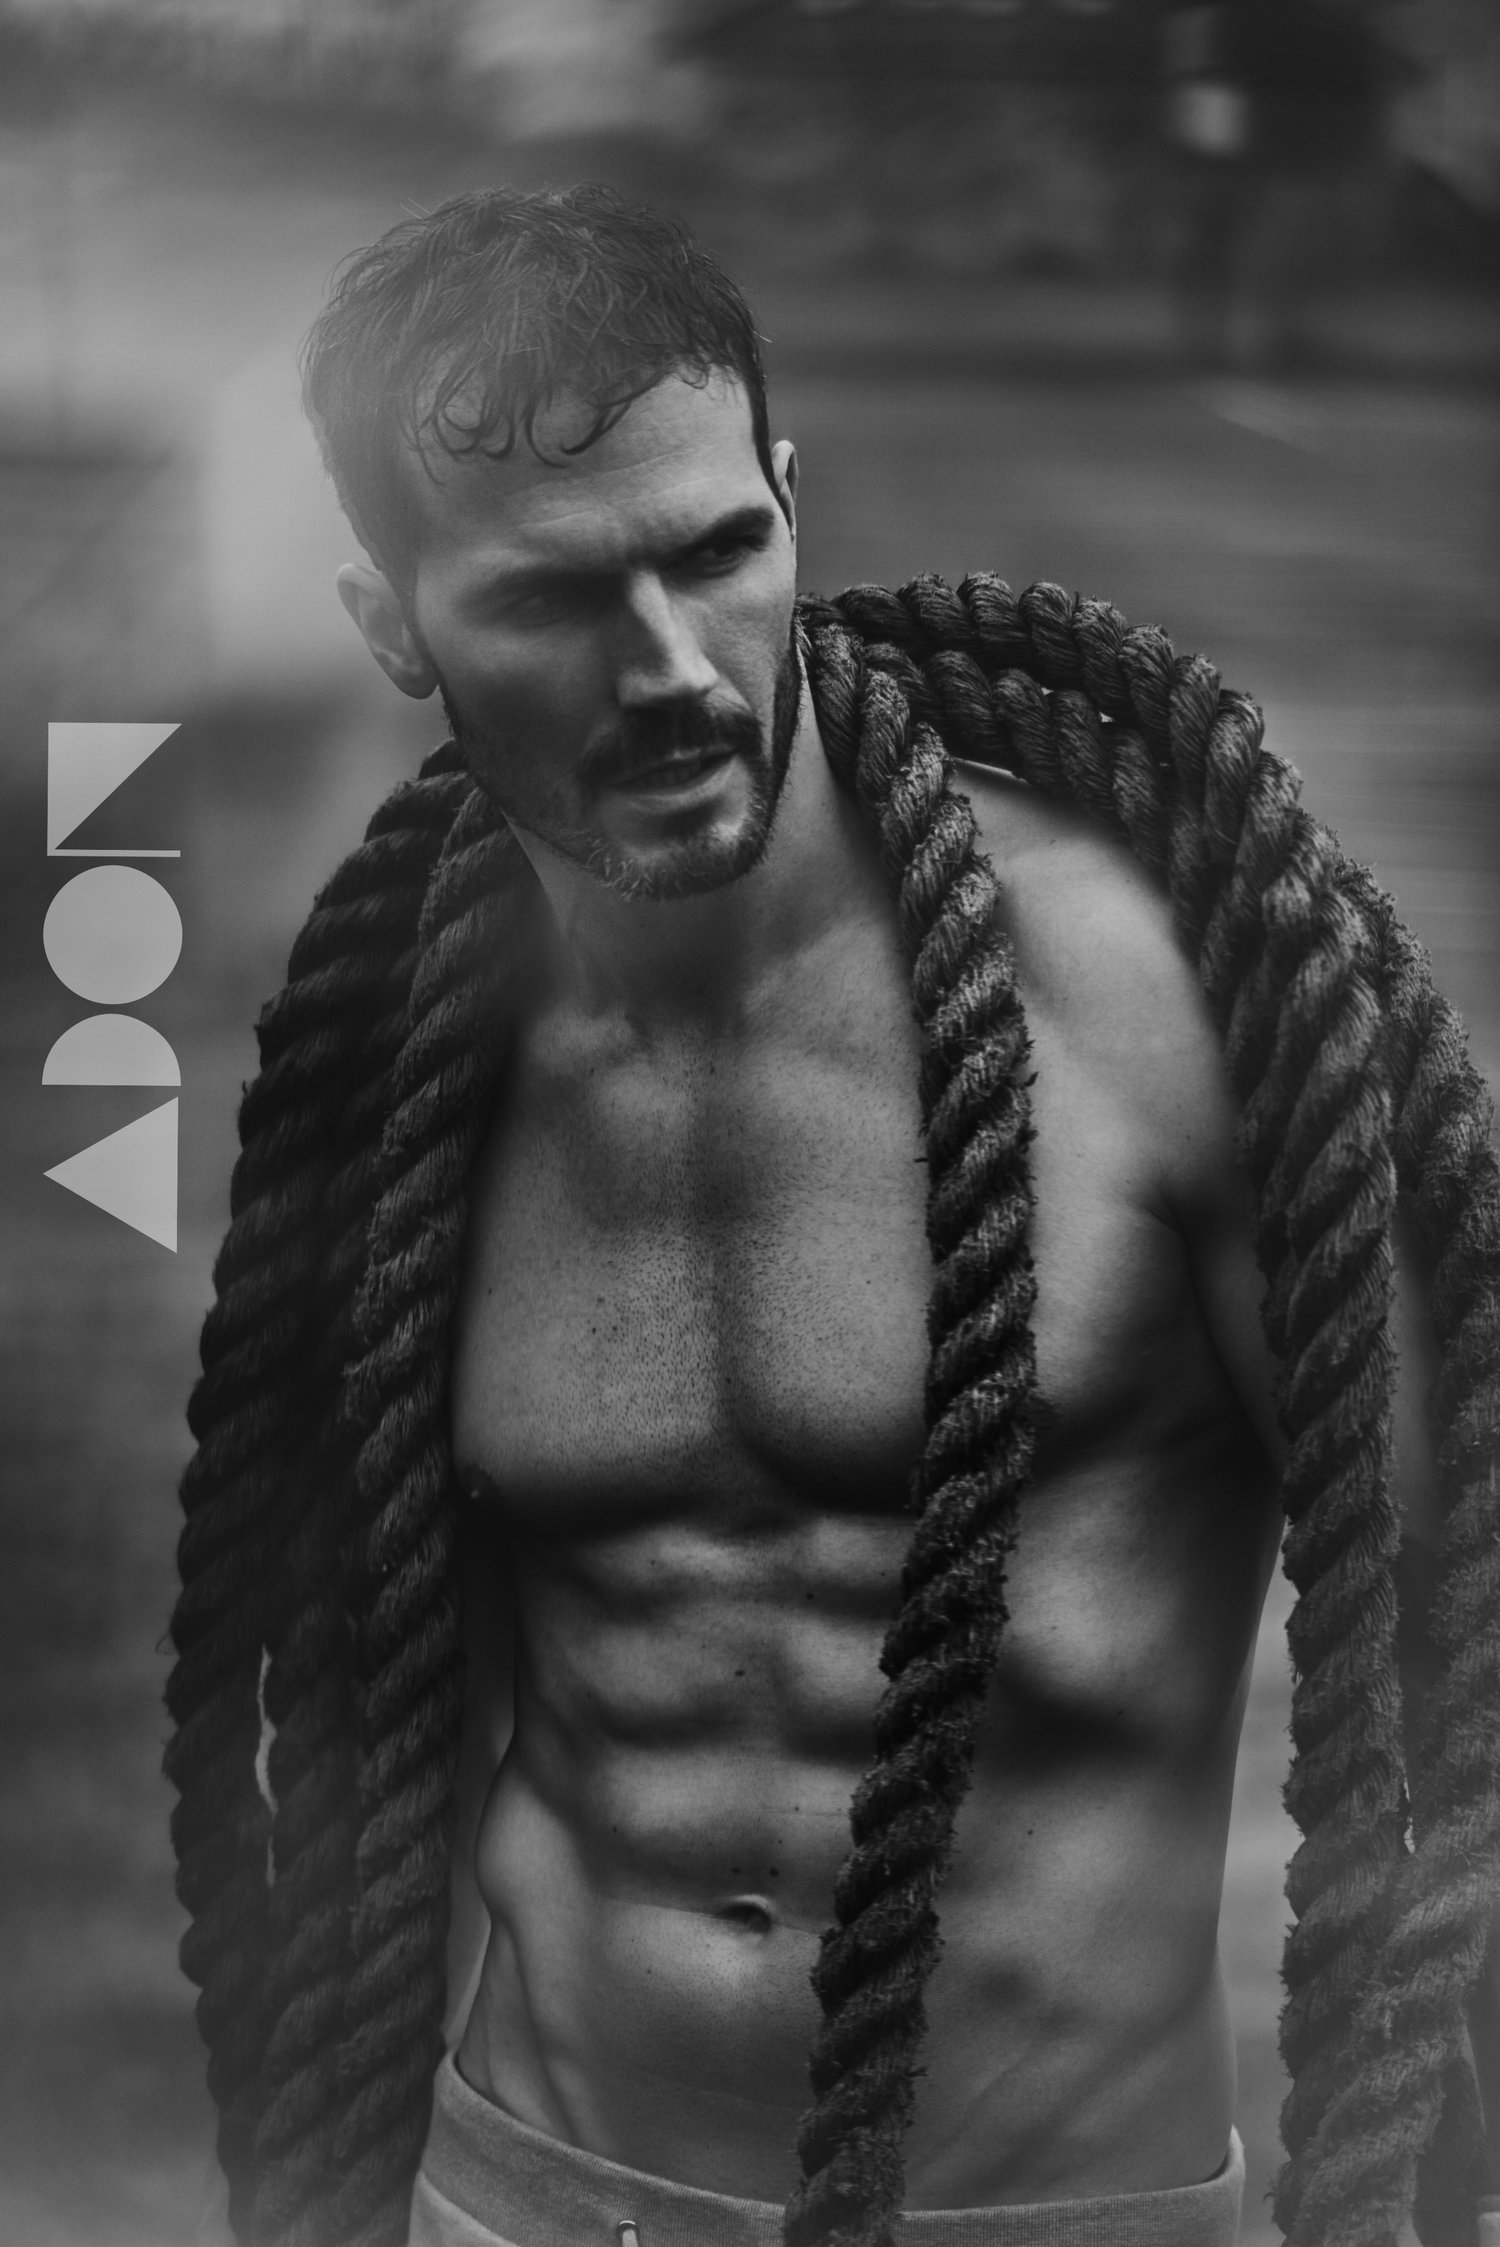 Adon Exclusive: Model Adam Cowie By Specular